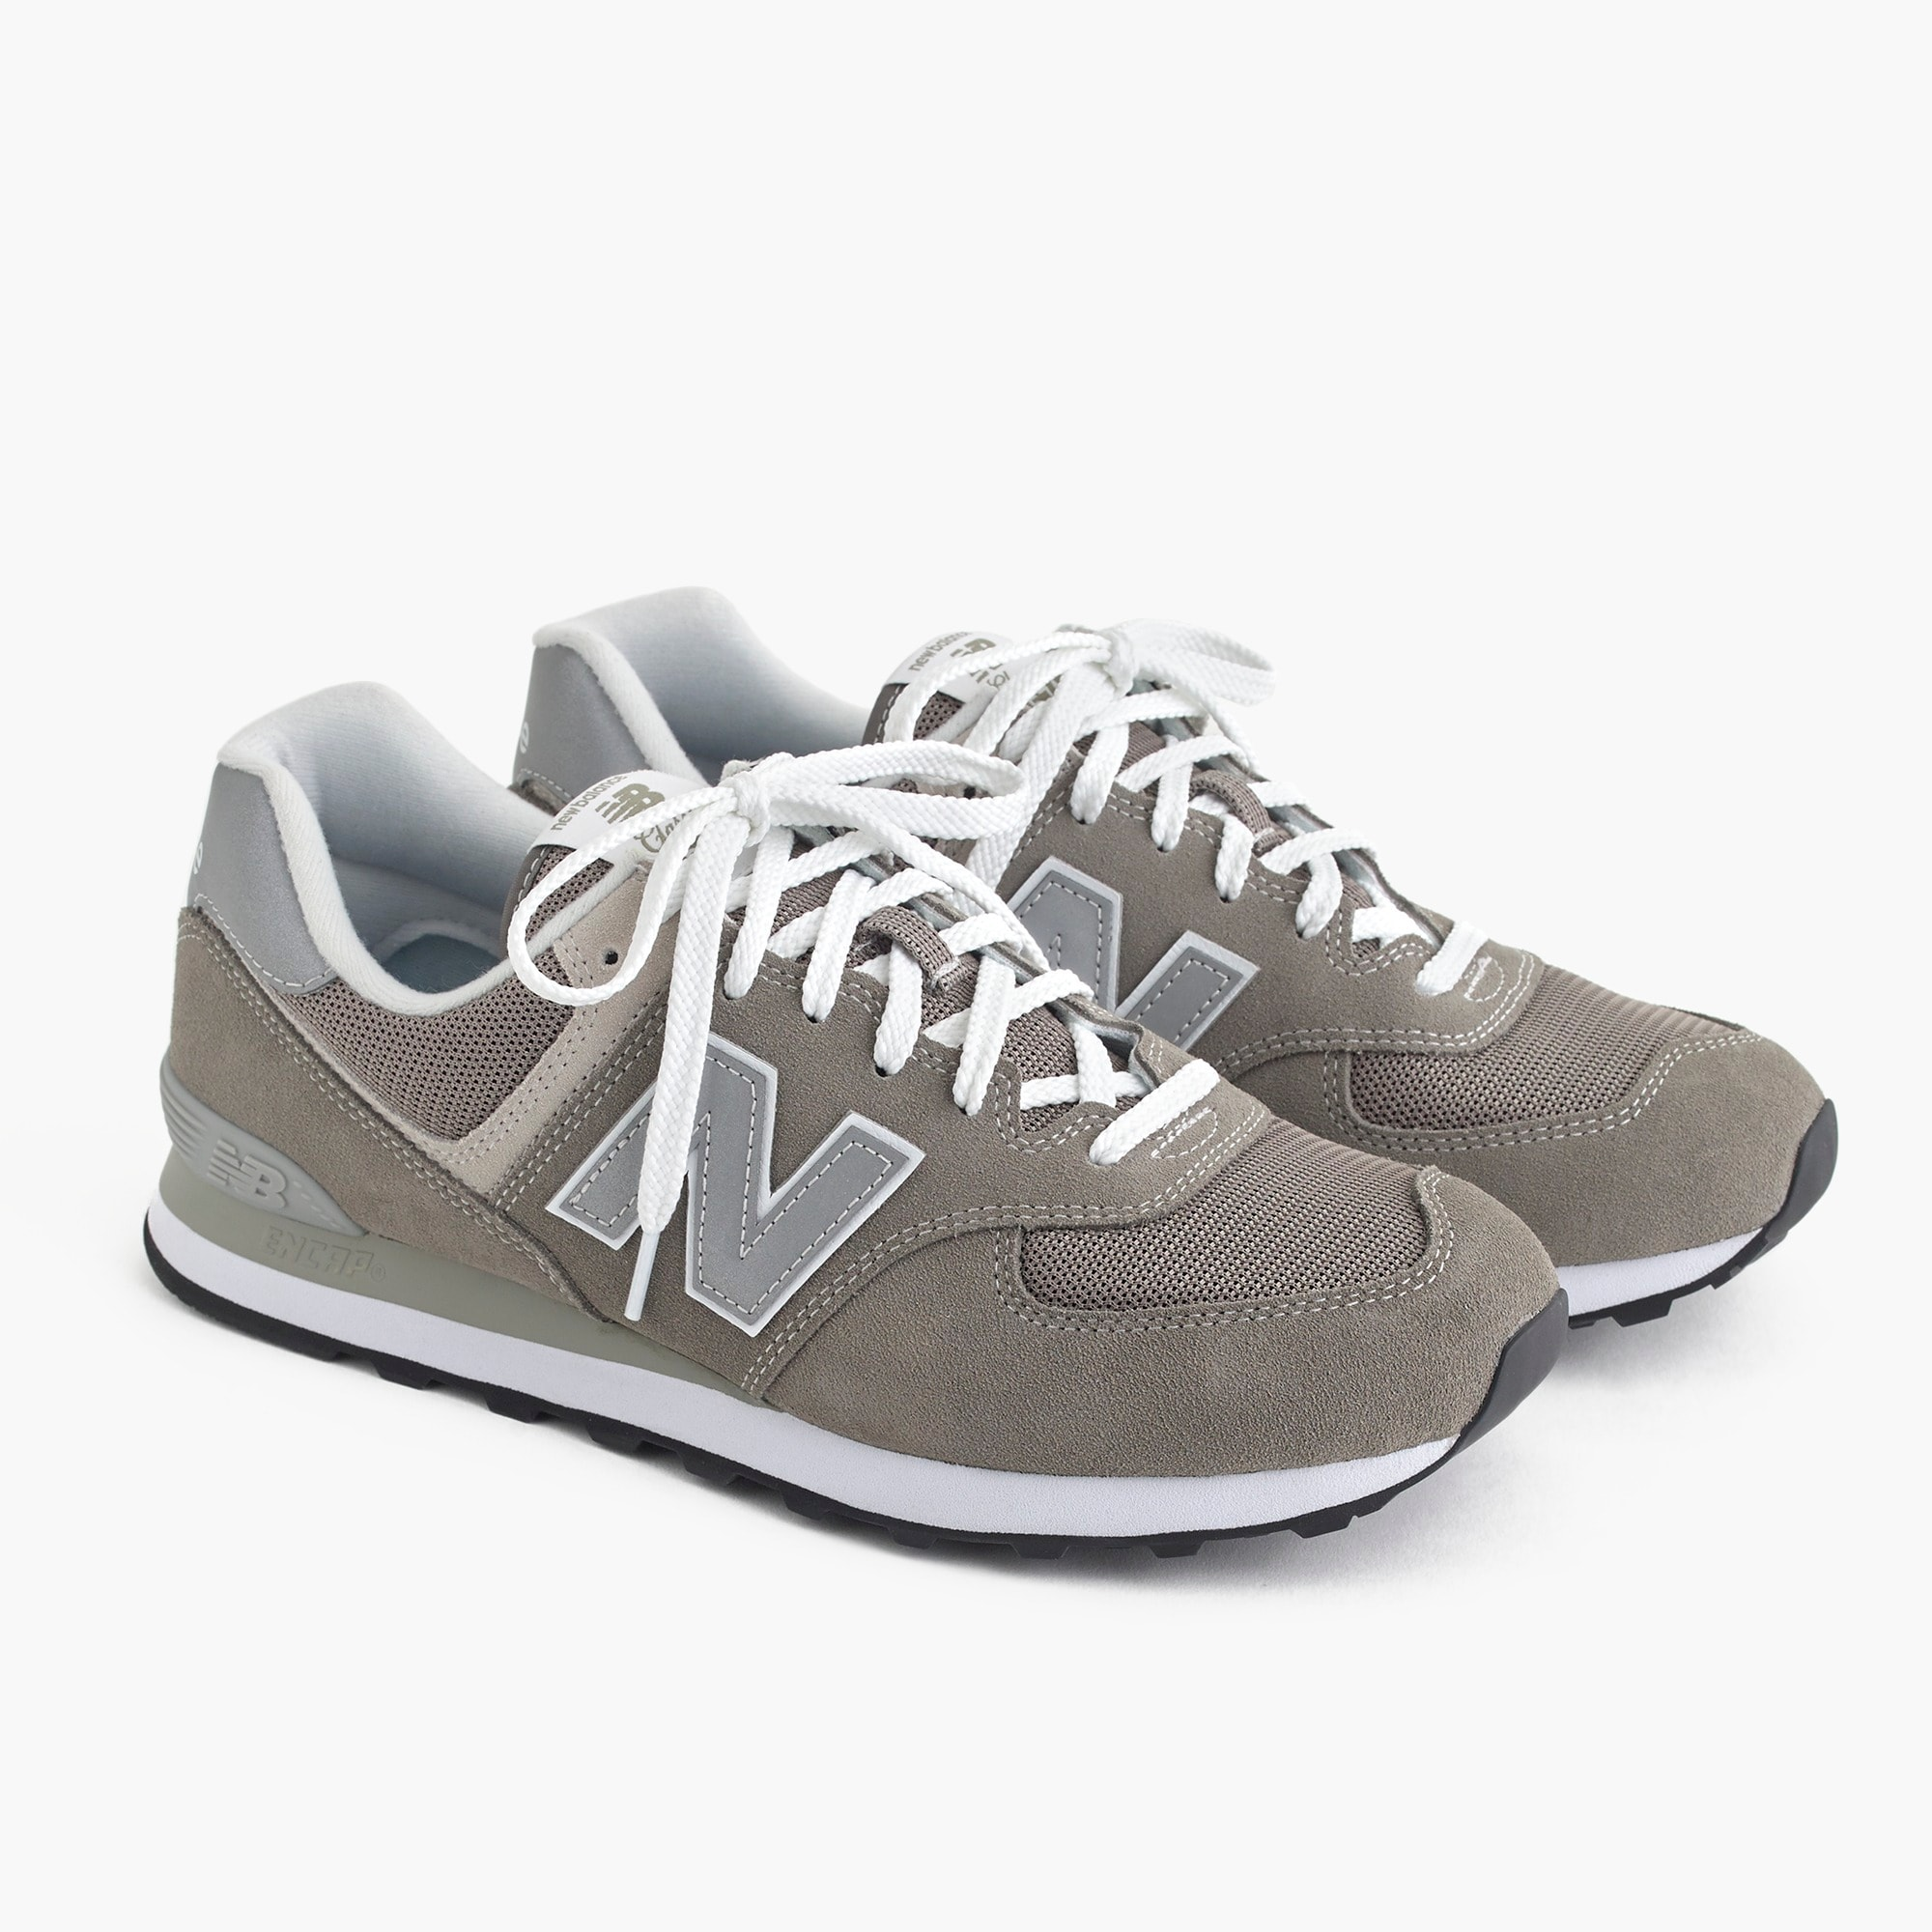 New Balance® 574 sneakers men j.crew in good company c